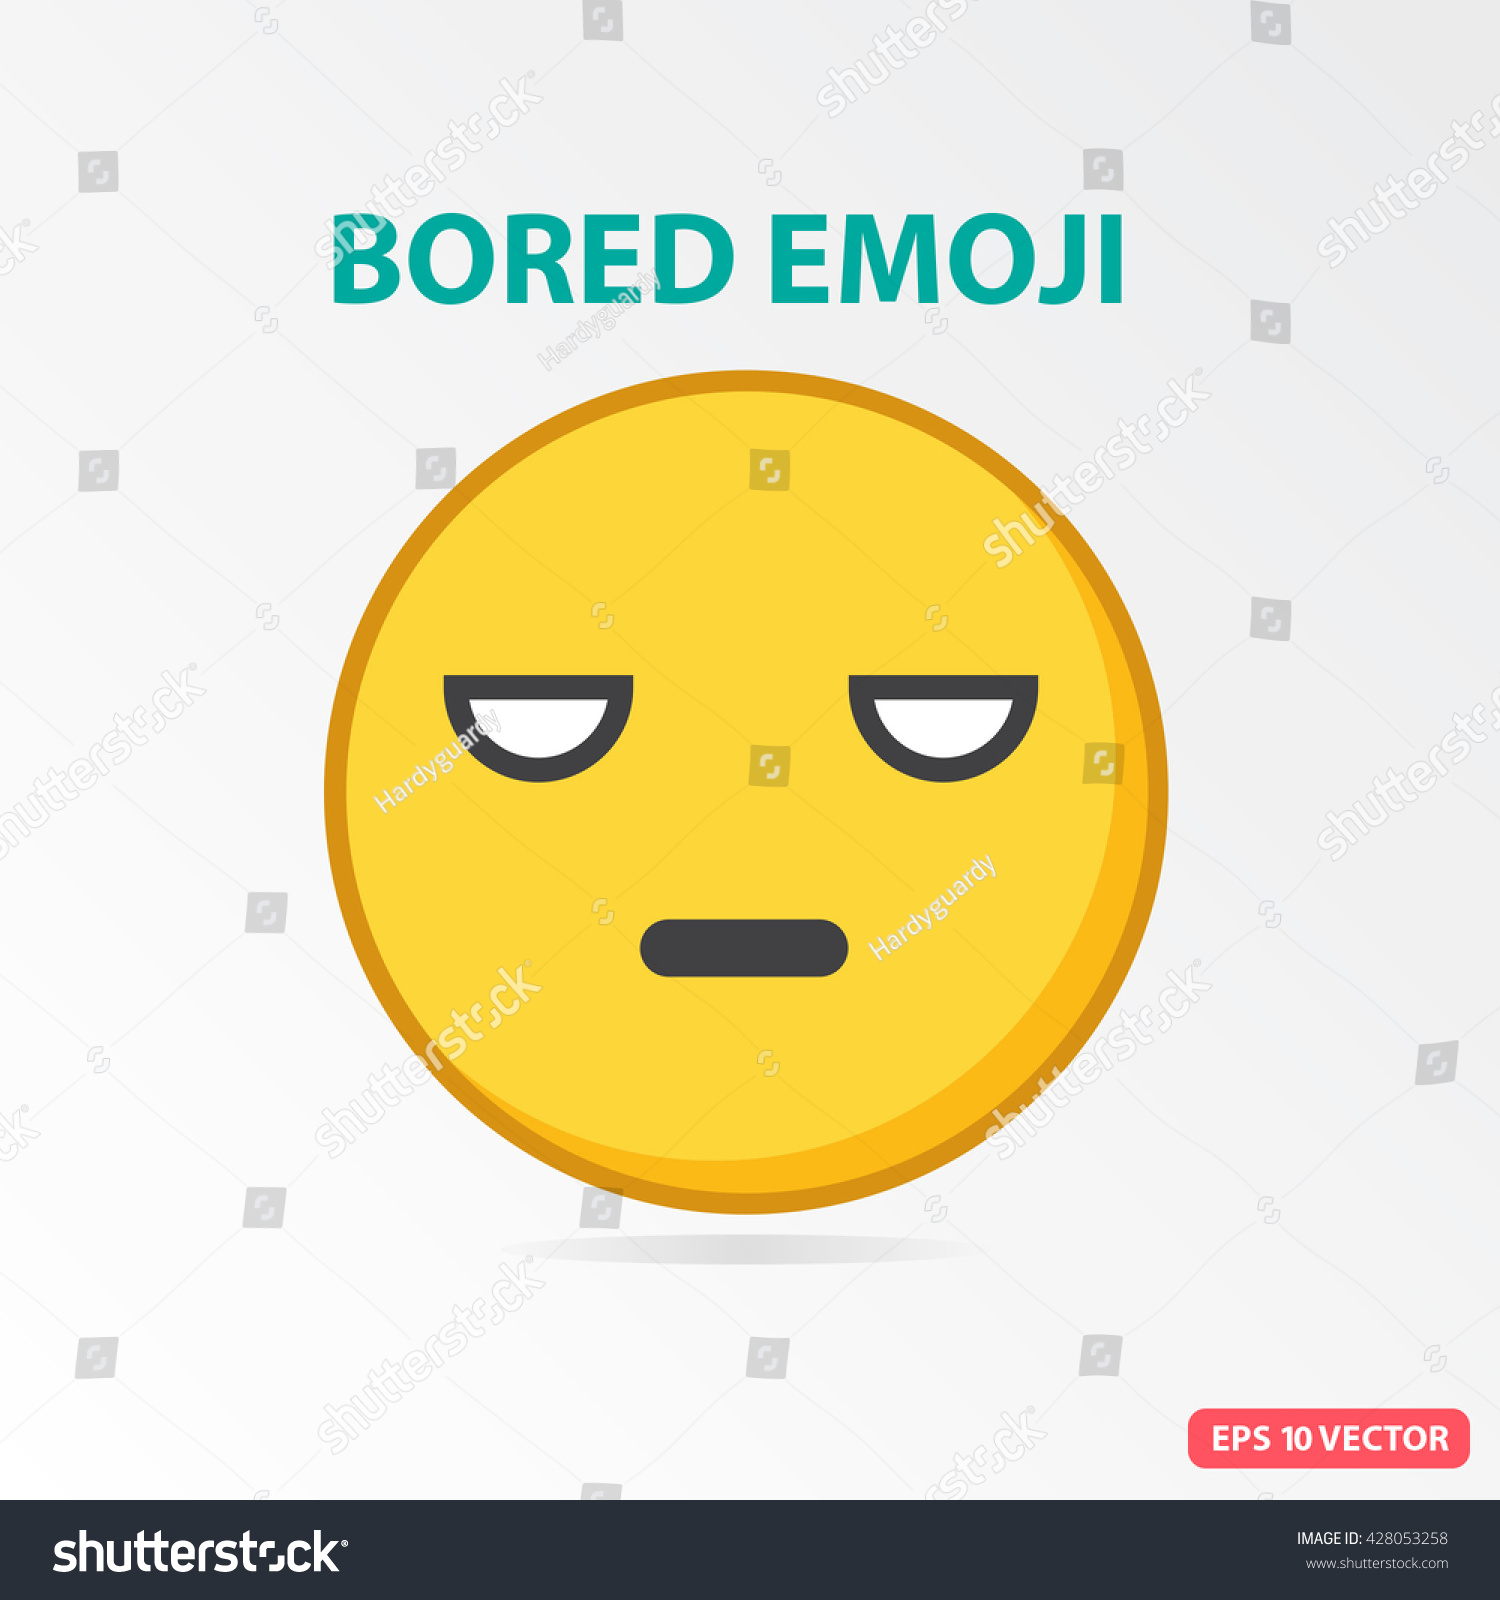 S Ingle Bored Emoji Isolated Vector Illustration Vector de ...